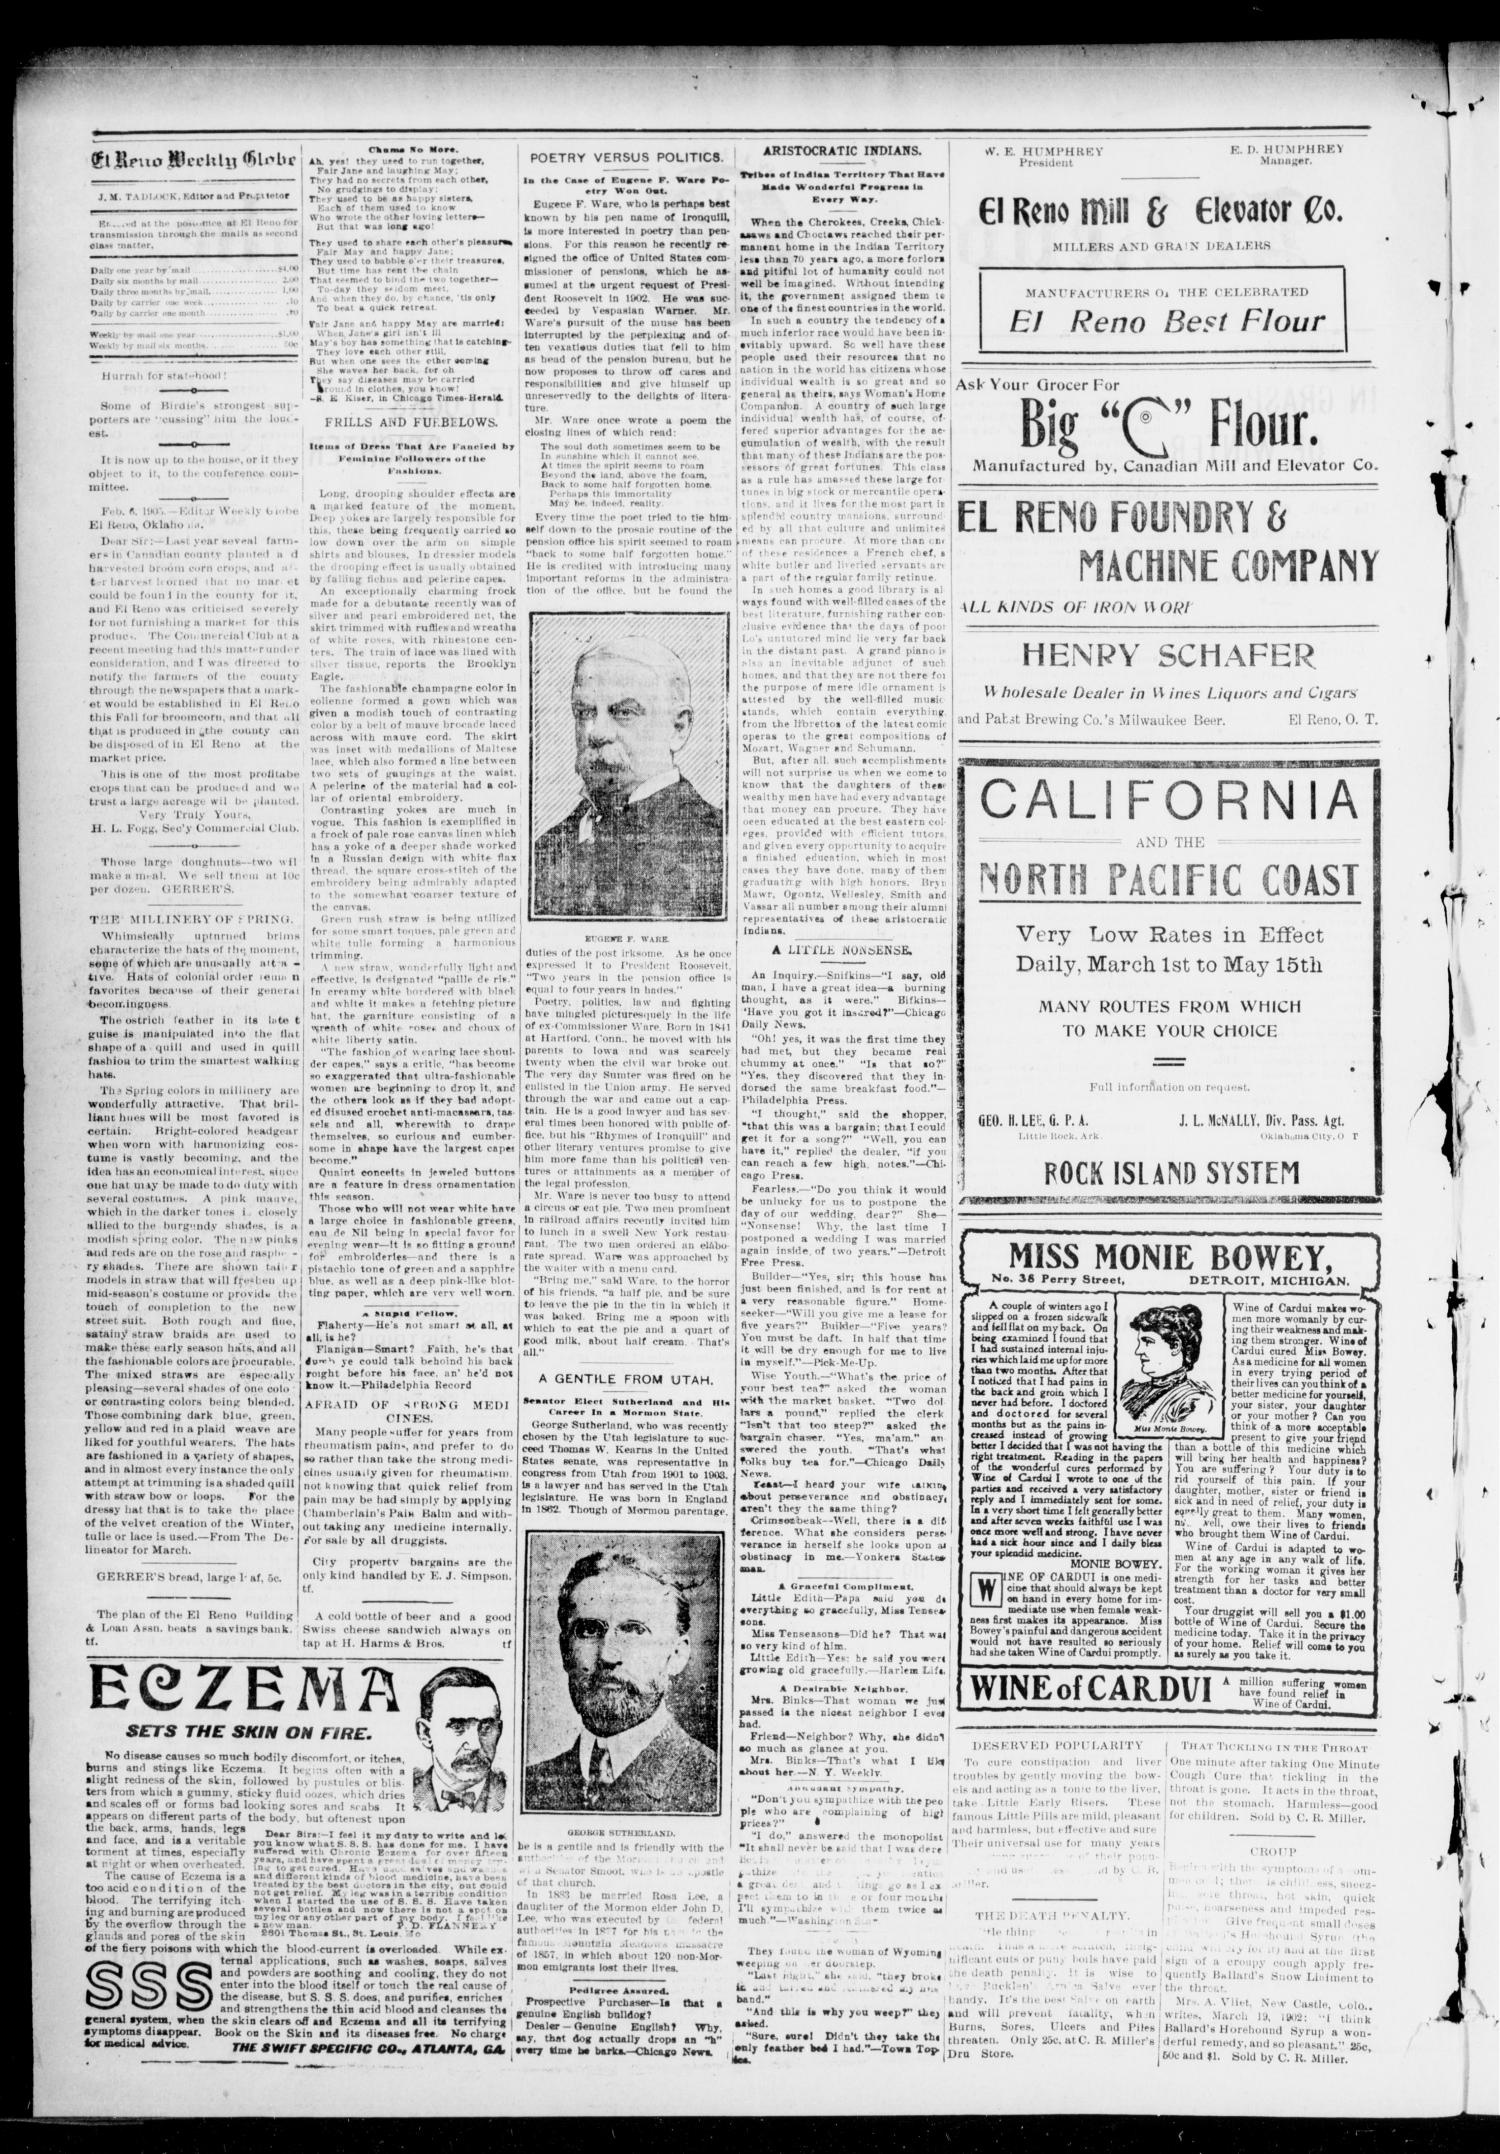 El Reno Weekly Globe. (El Reno, Okla.), Vol. 11, No. 48, Ed. 2 Friday, February 10, 1905                                                                                                      [Sequence #]: 2 of 6